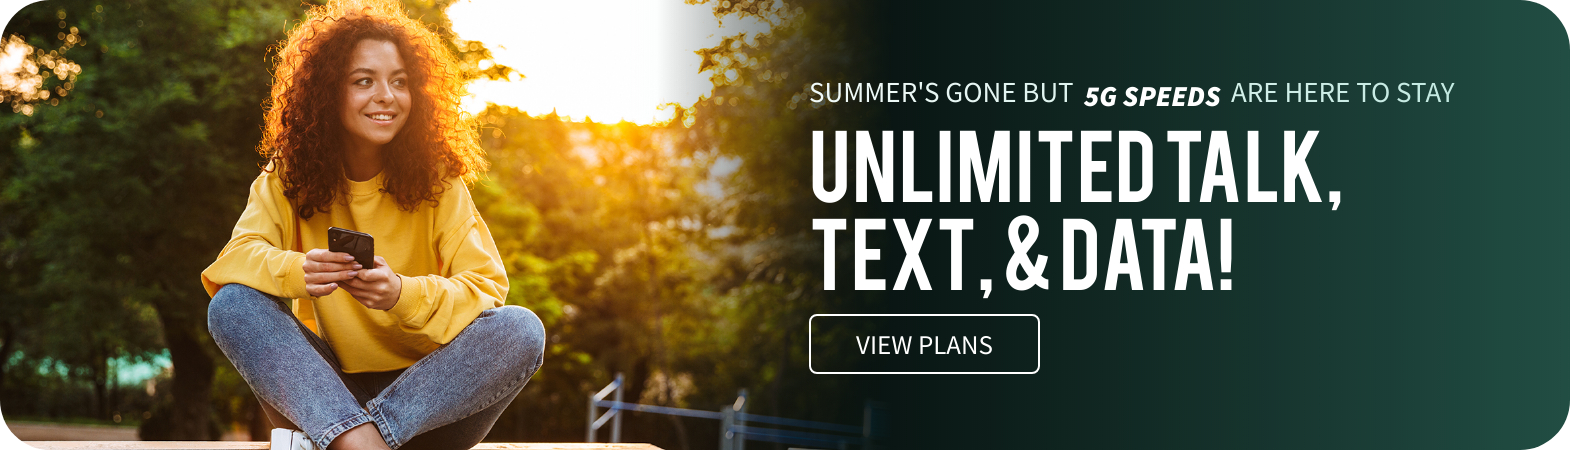 home page unlimited plan advertisement